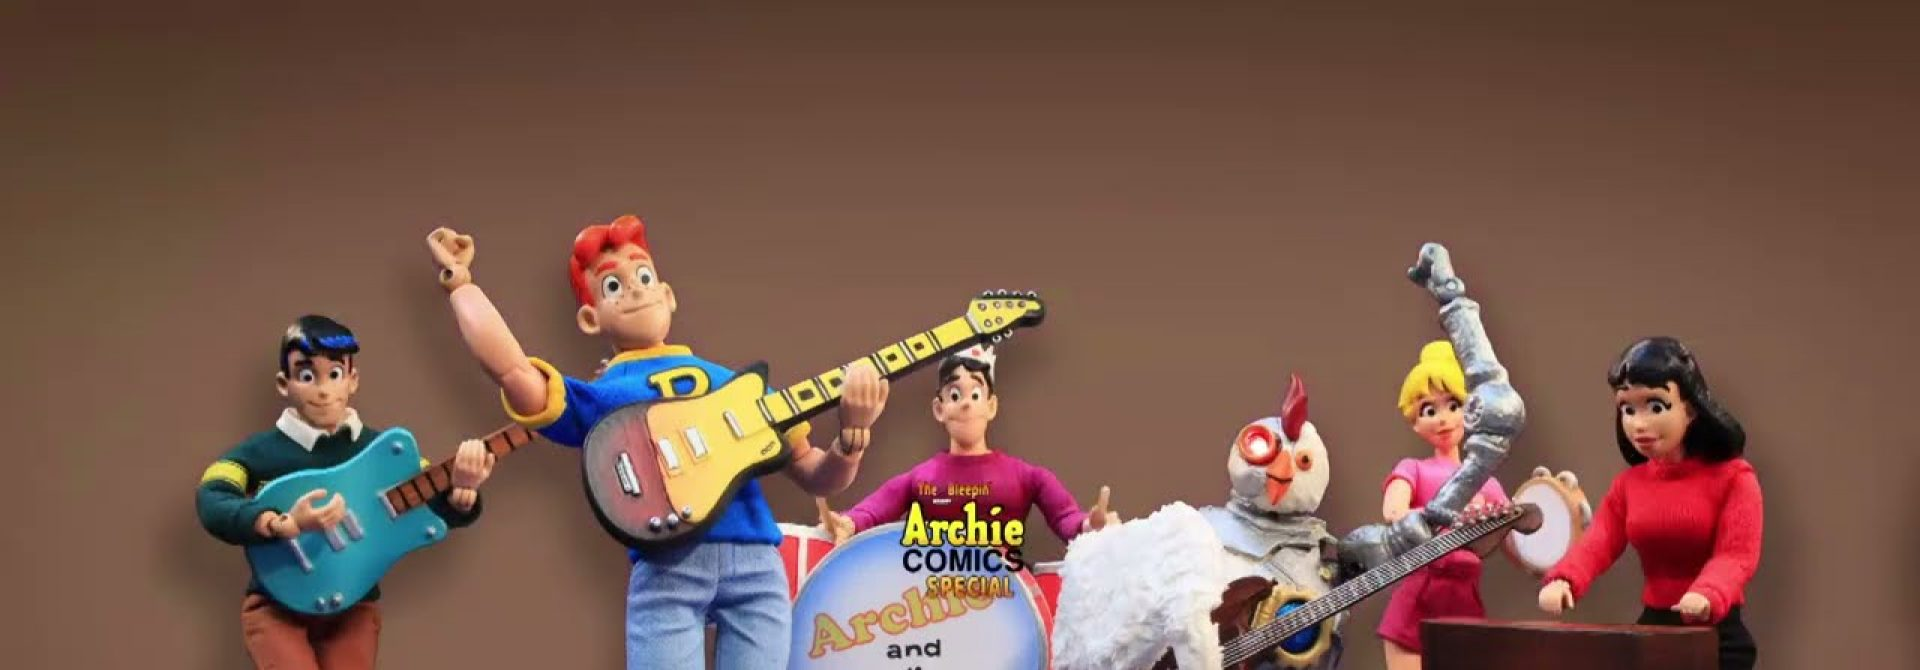 The Bleepin' Robot Chicken Archie Comics Special Airs May 23